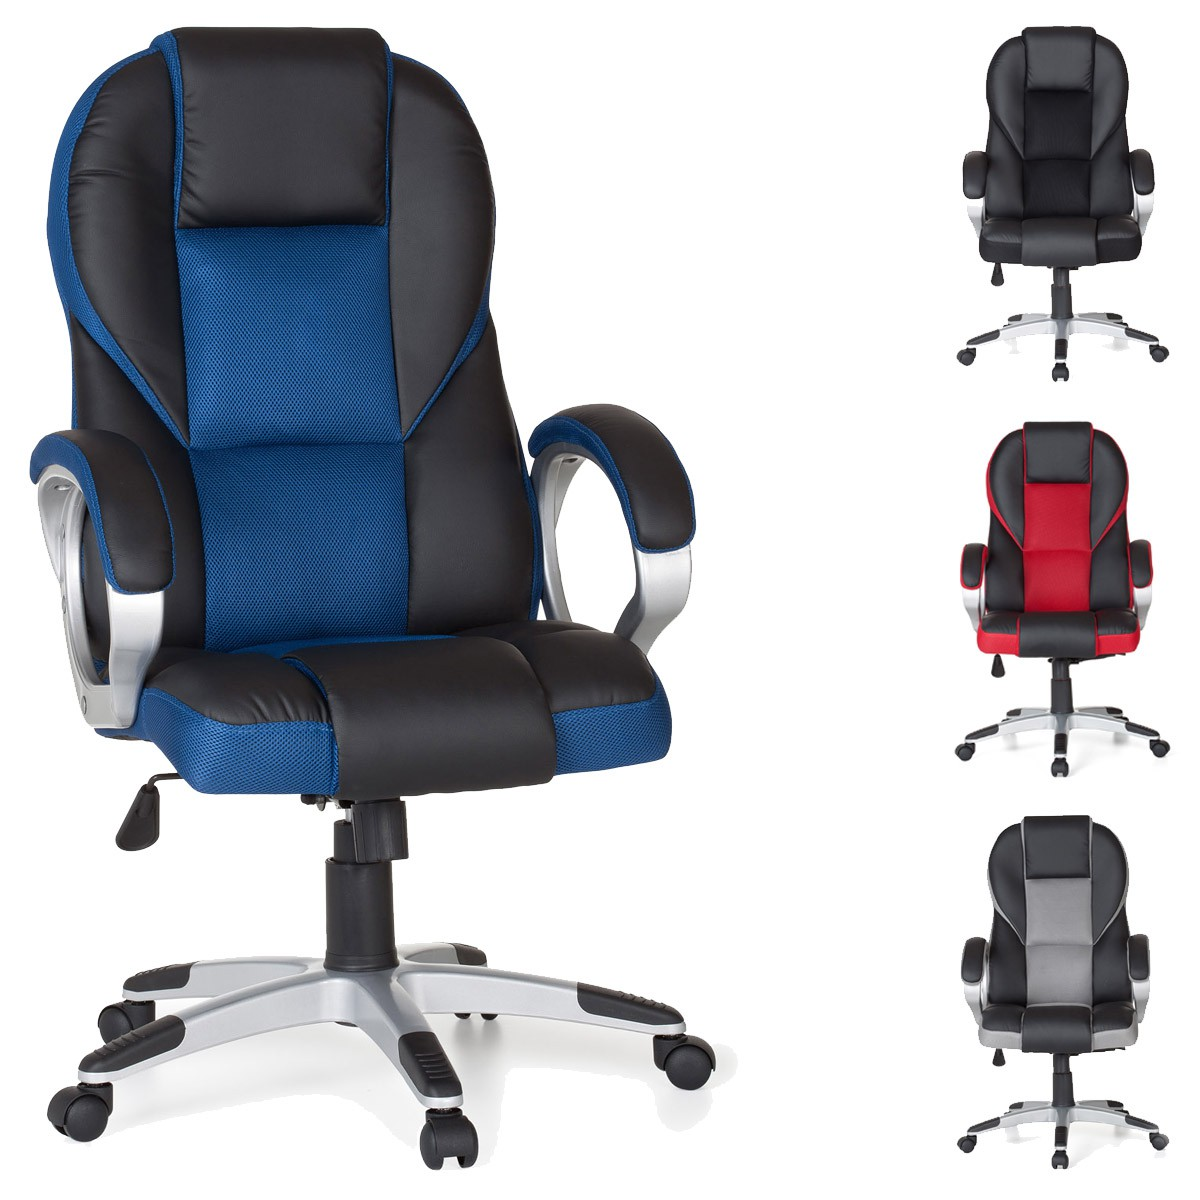 Desk chair gaming furniture the ergonomic gaming desk for Bester chefsessel